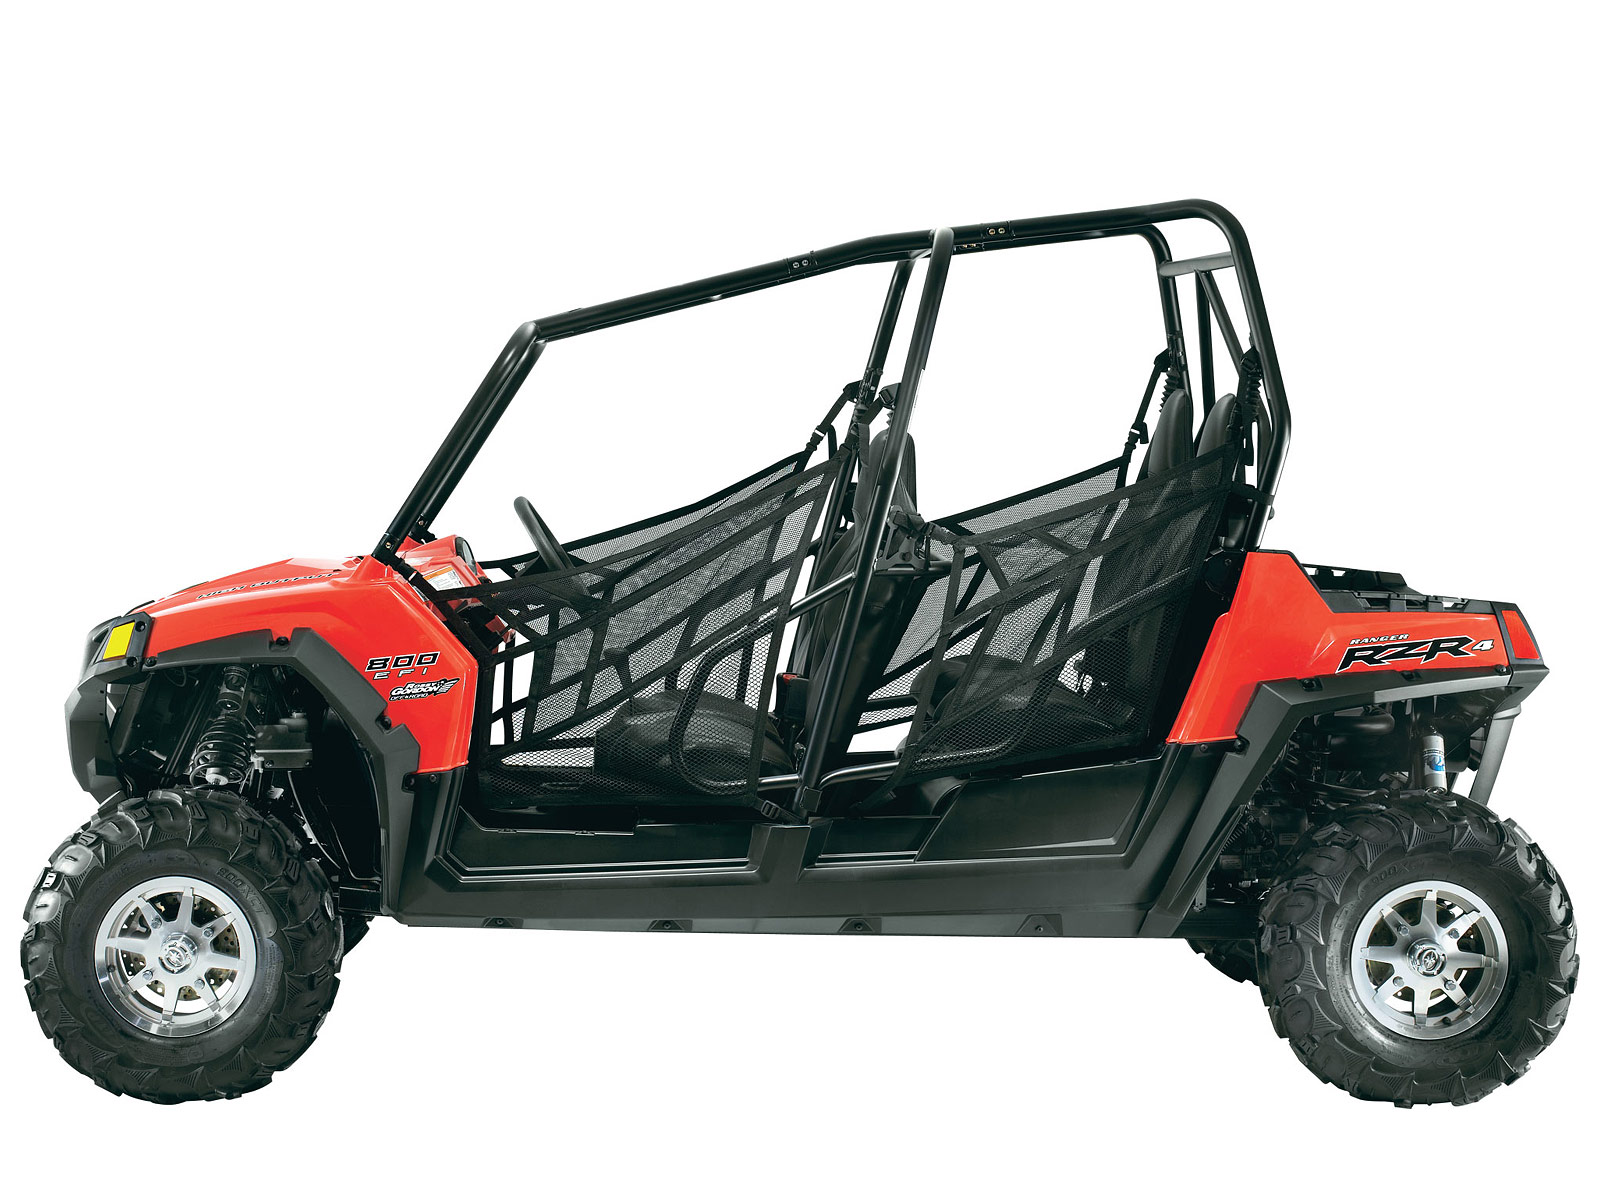 2012 ranger rzr 4 800 robby gordon edition atv pictures. Black Bedroom Furniture Sets. Home Design Ideas